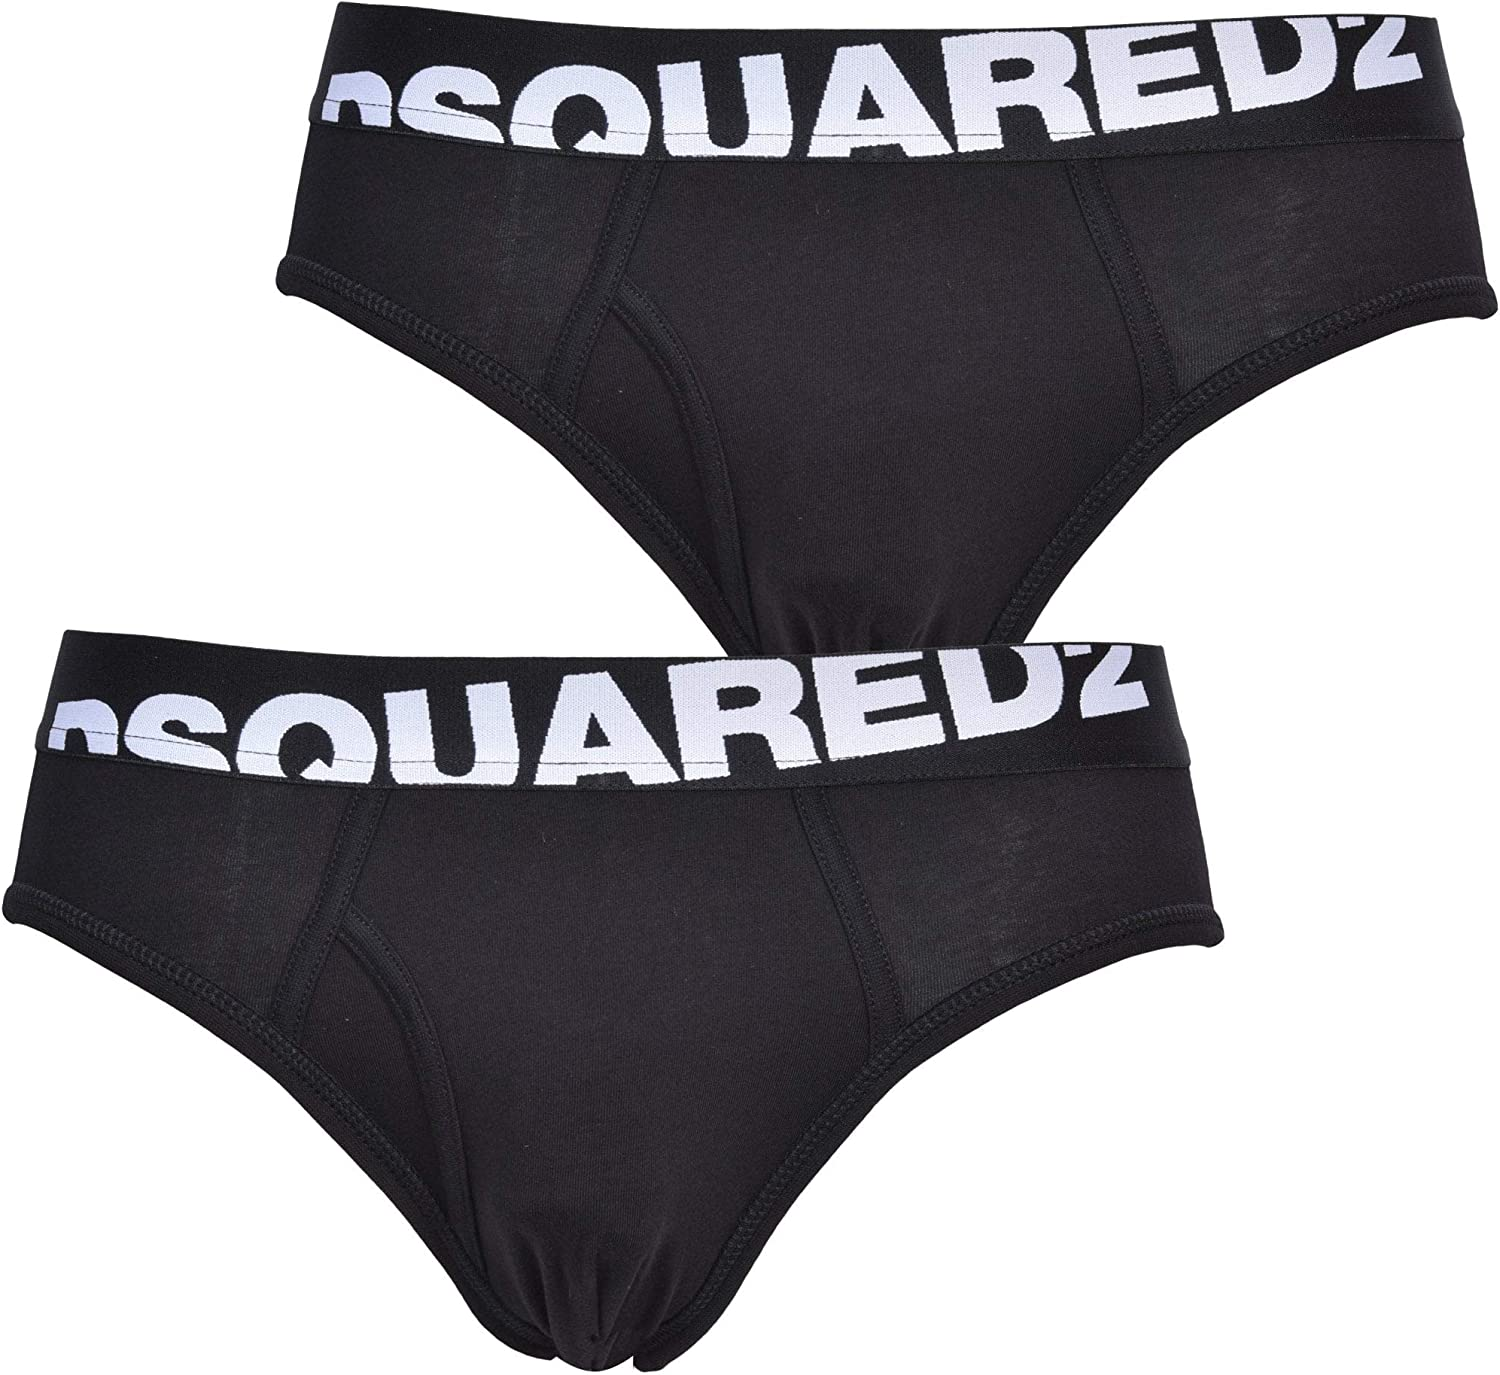 DSQUARED2 2-Pack Angled Logo Low-Rise Men's Briefs, White